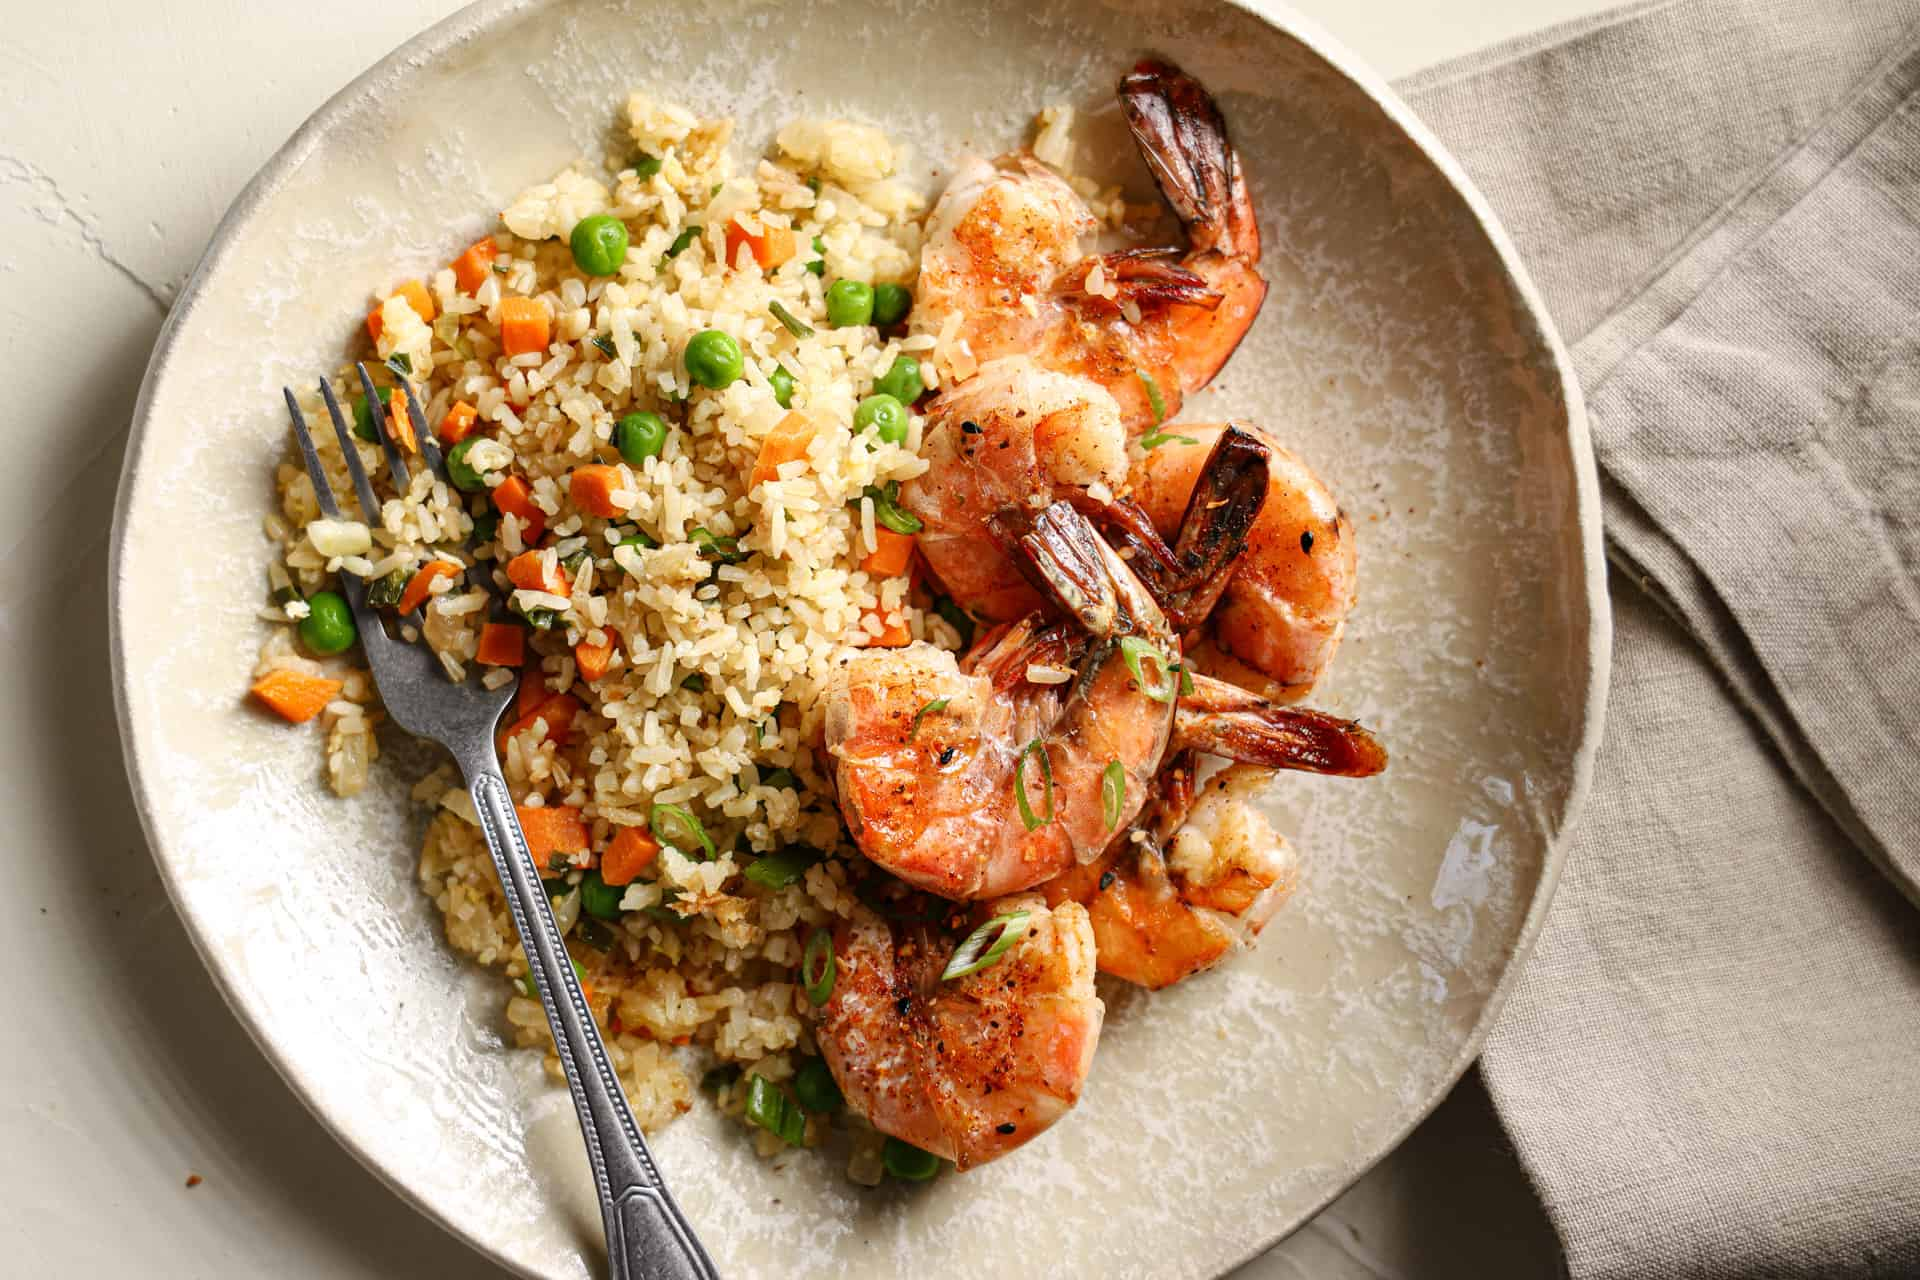 Shrimp and fried rice on a tan plate with a napkin and fork